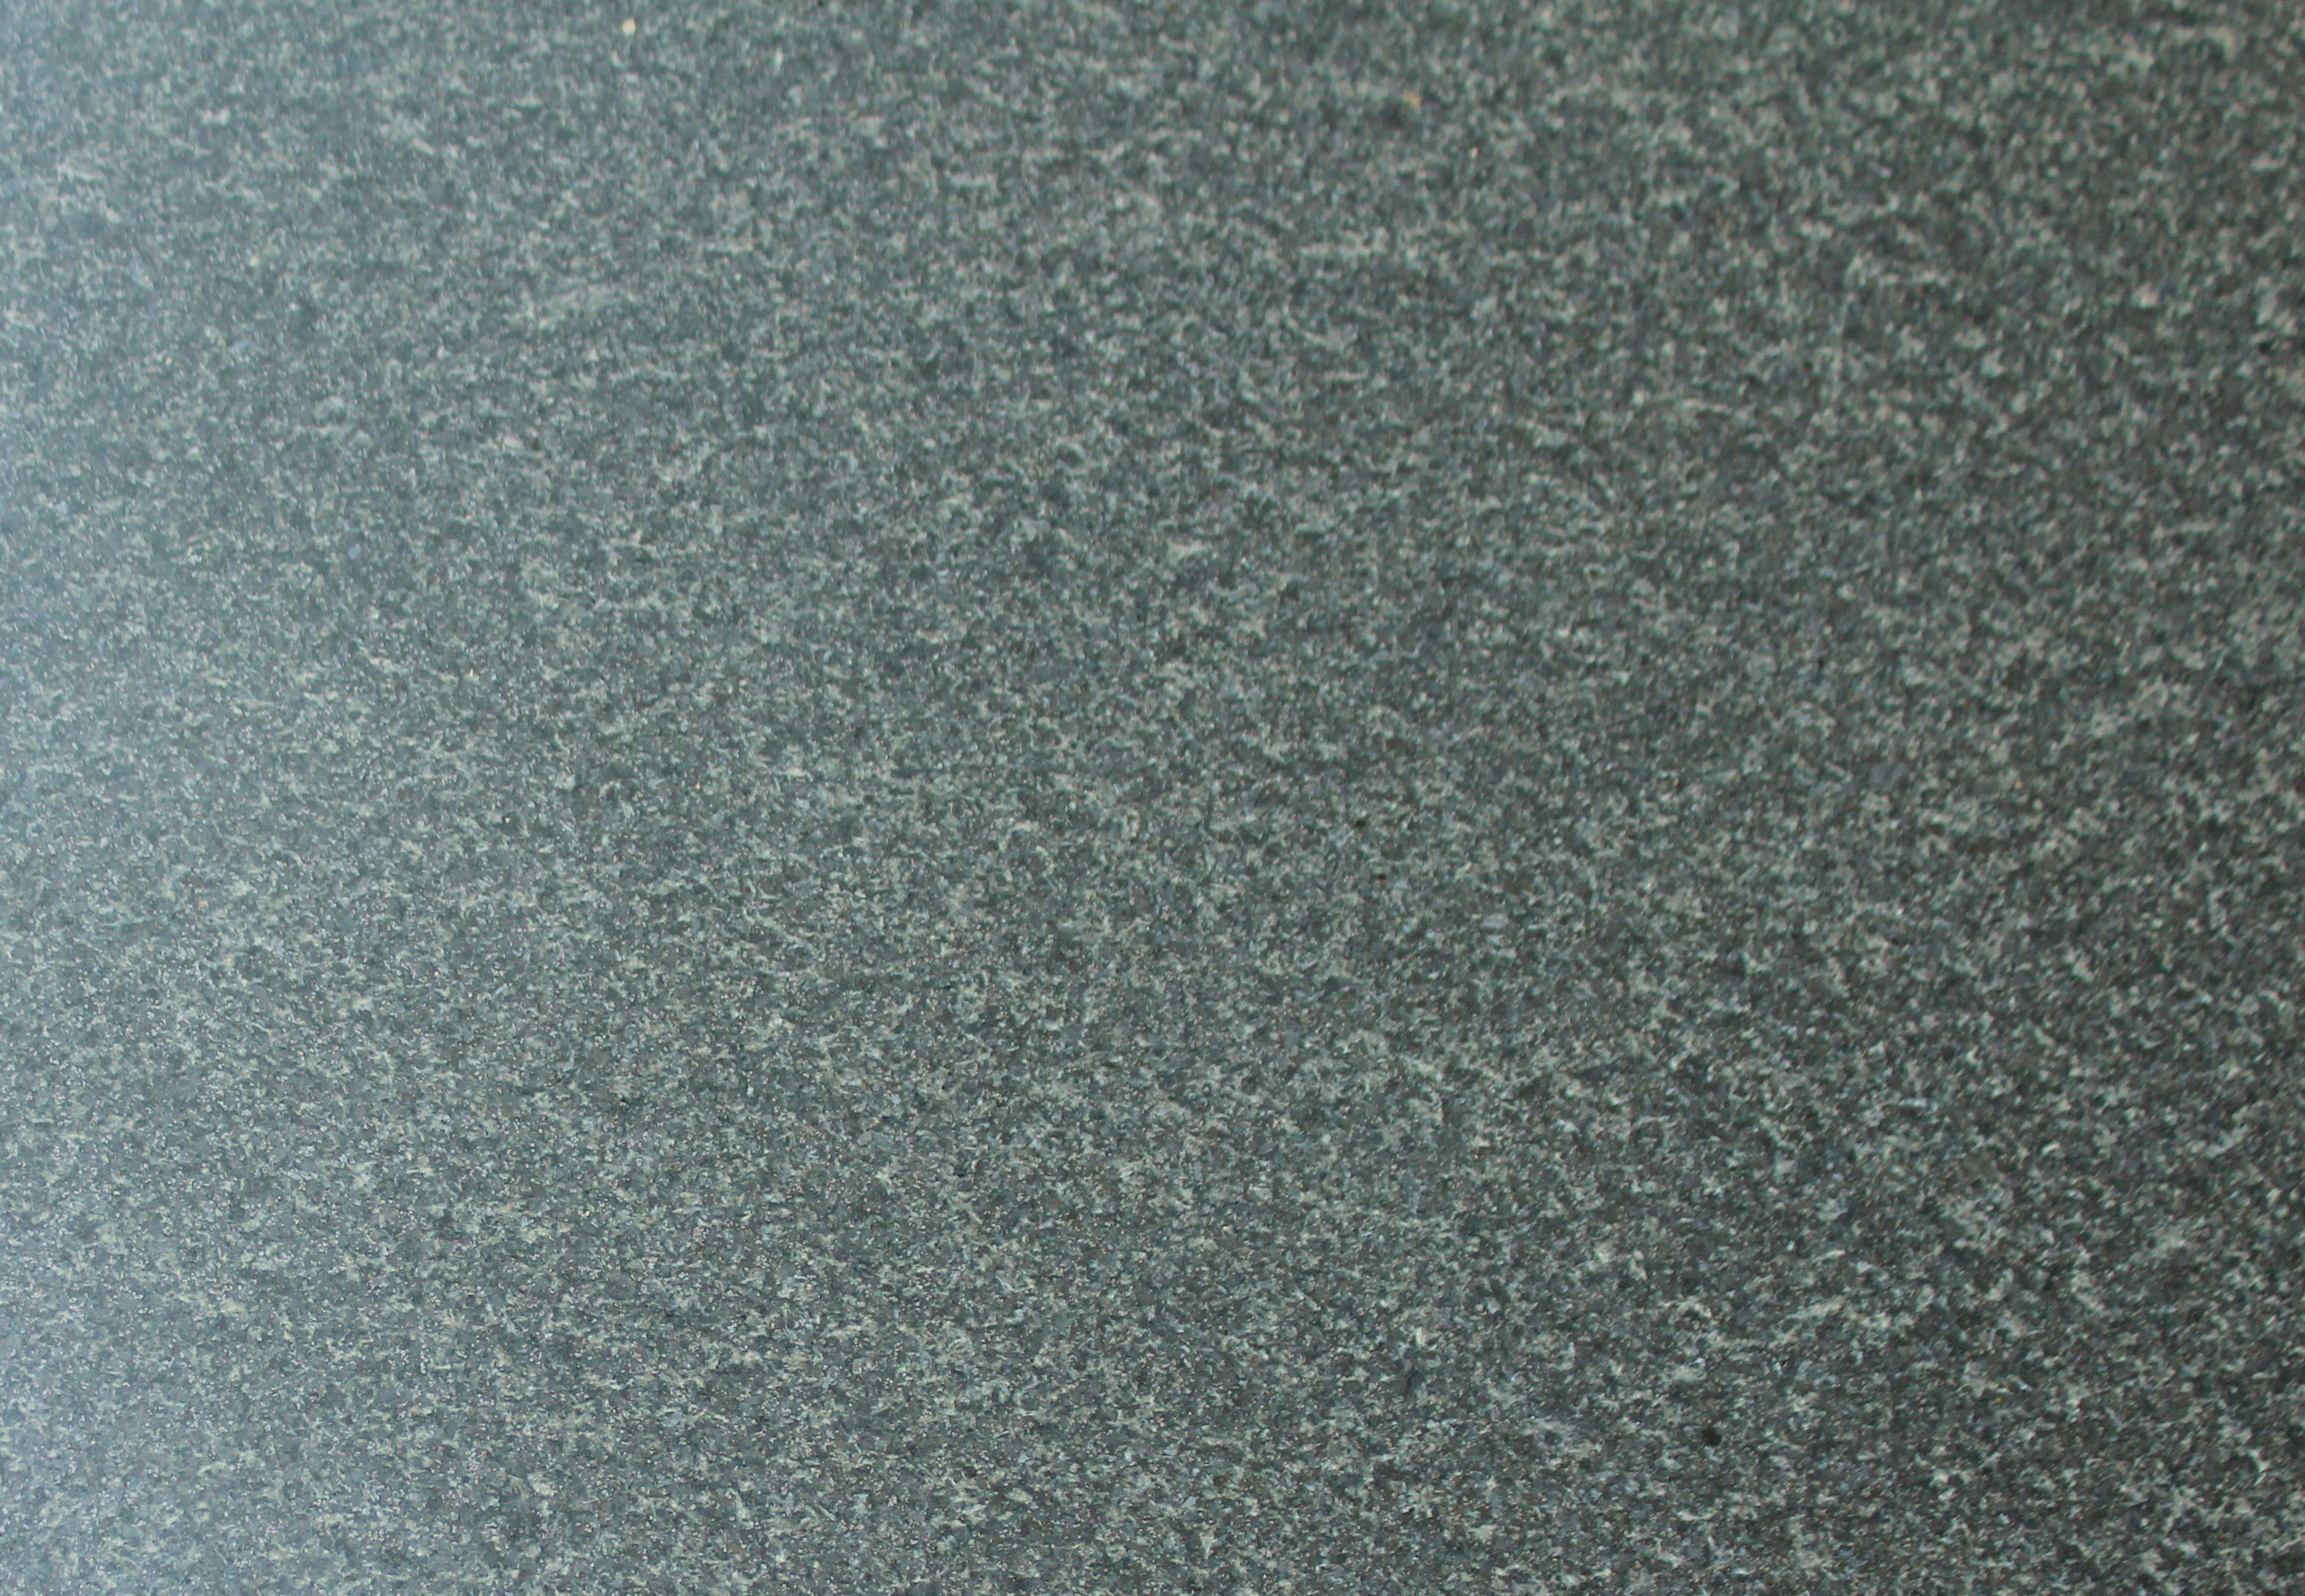 Granite - Honed Absolute Black